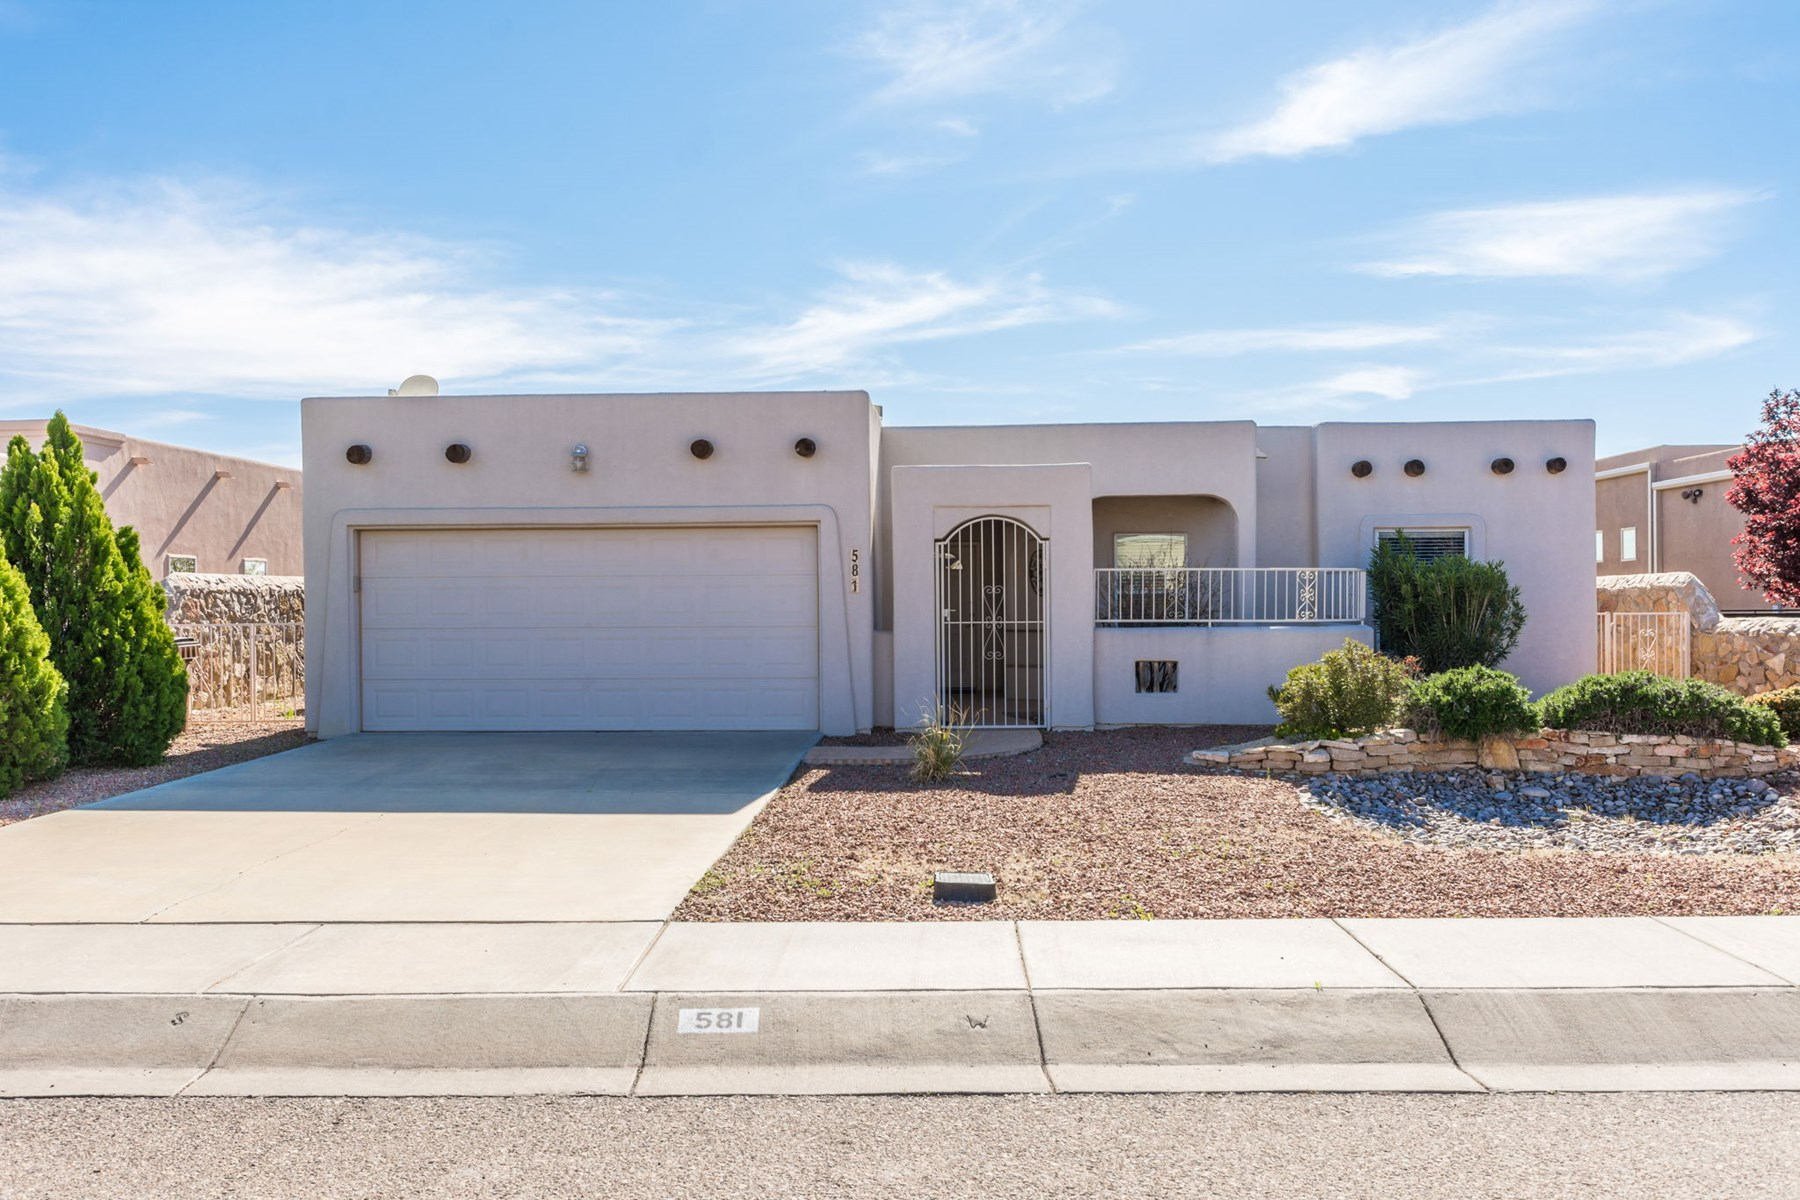 3BD 2BTH Southwest Style Home in Las Cruces, NM